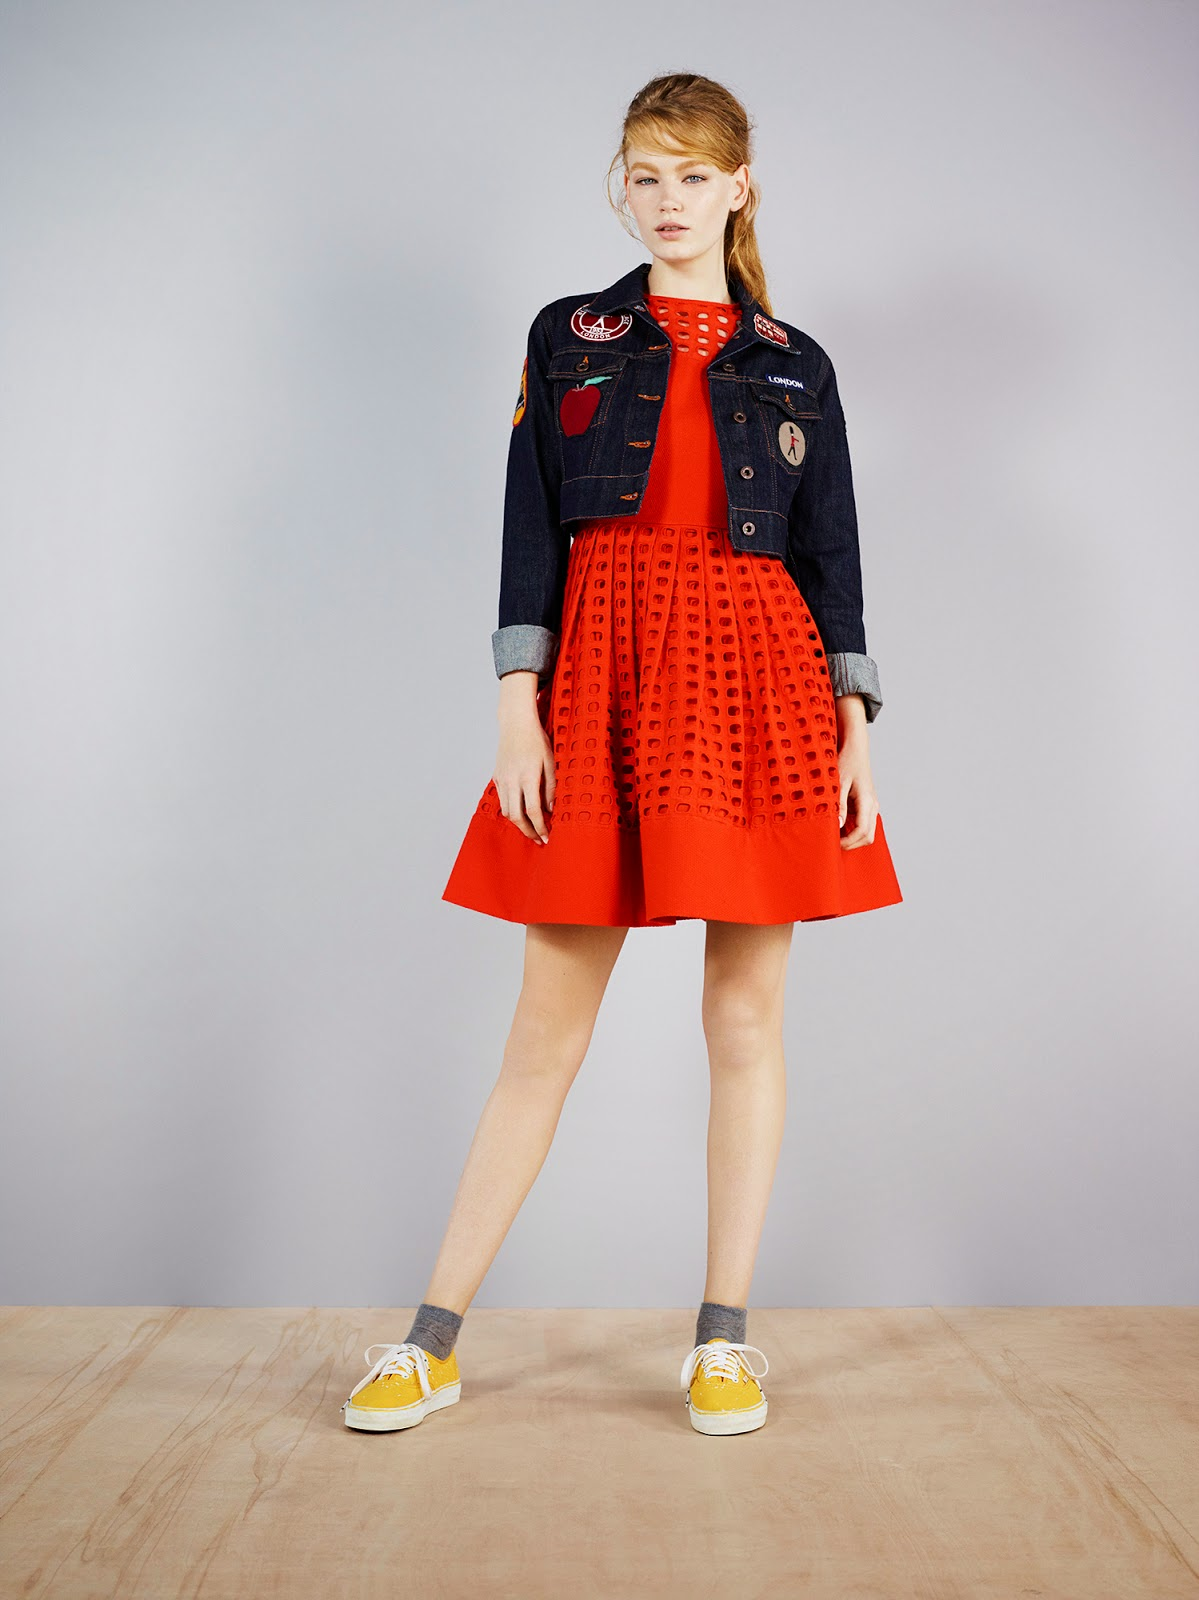 a7d07a6283c frumpy to funky  Richard Nicoll s first collection for Jack Wills